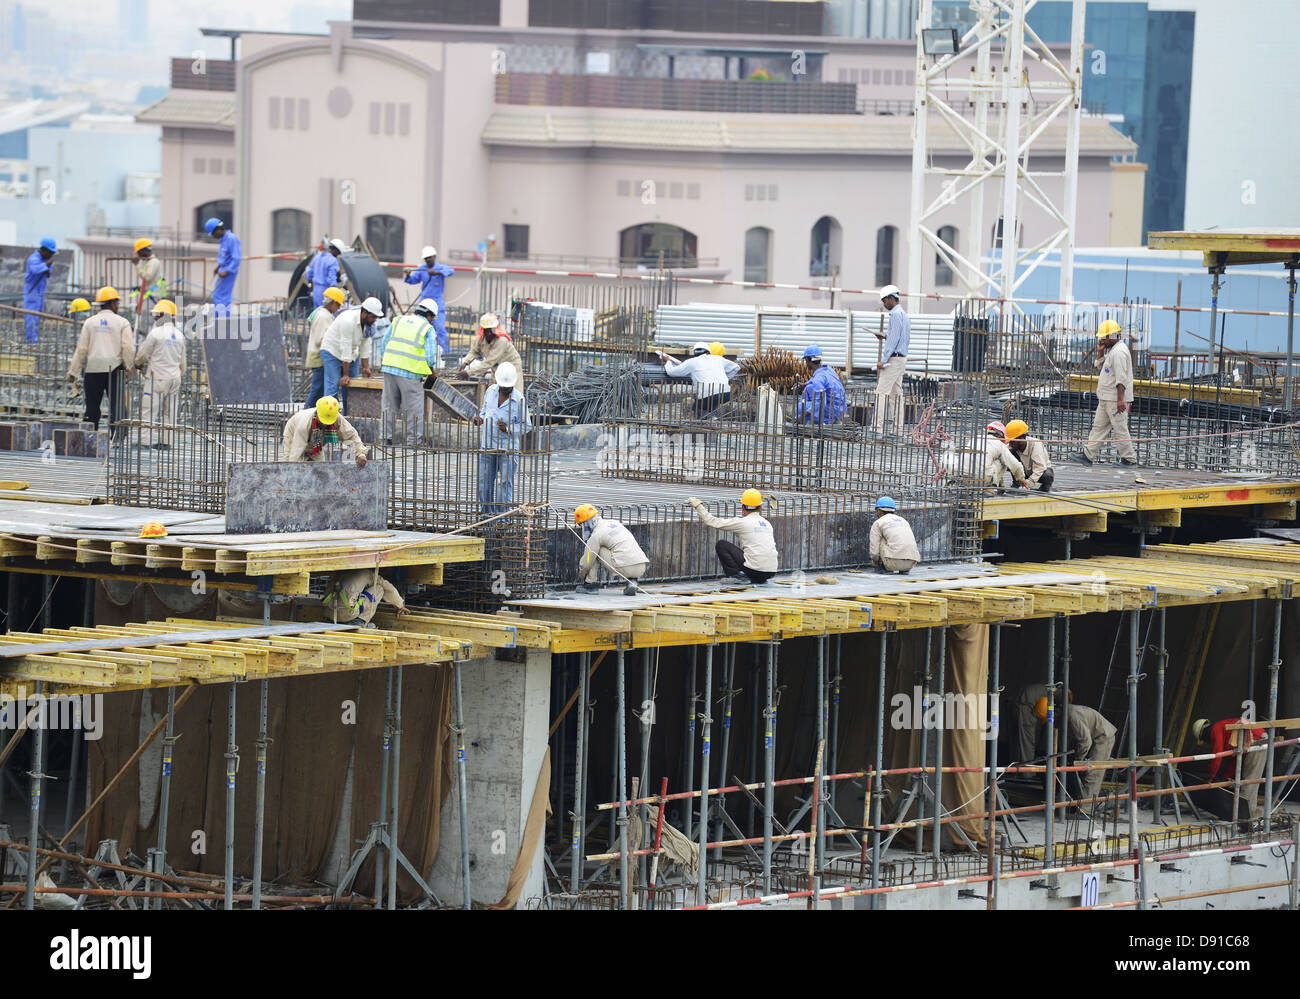 Dubai building industry, construction work being carried out in the city of Dubai, United Arab Emirates - Stock Image